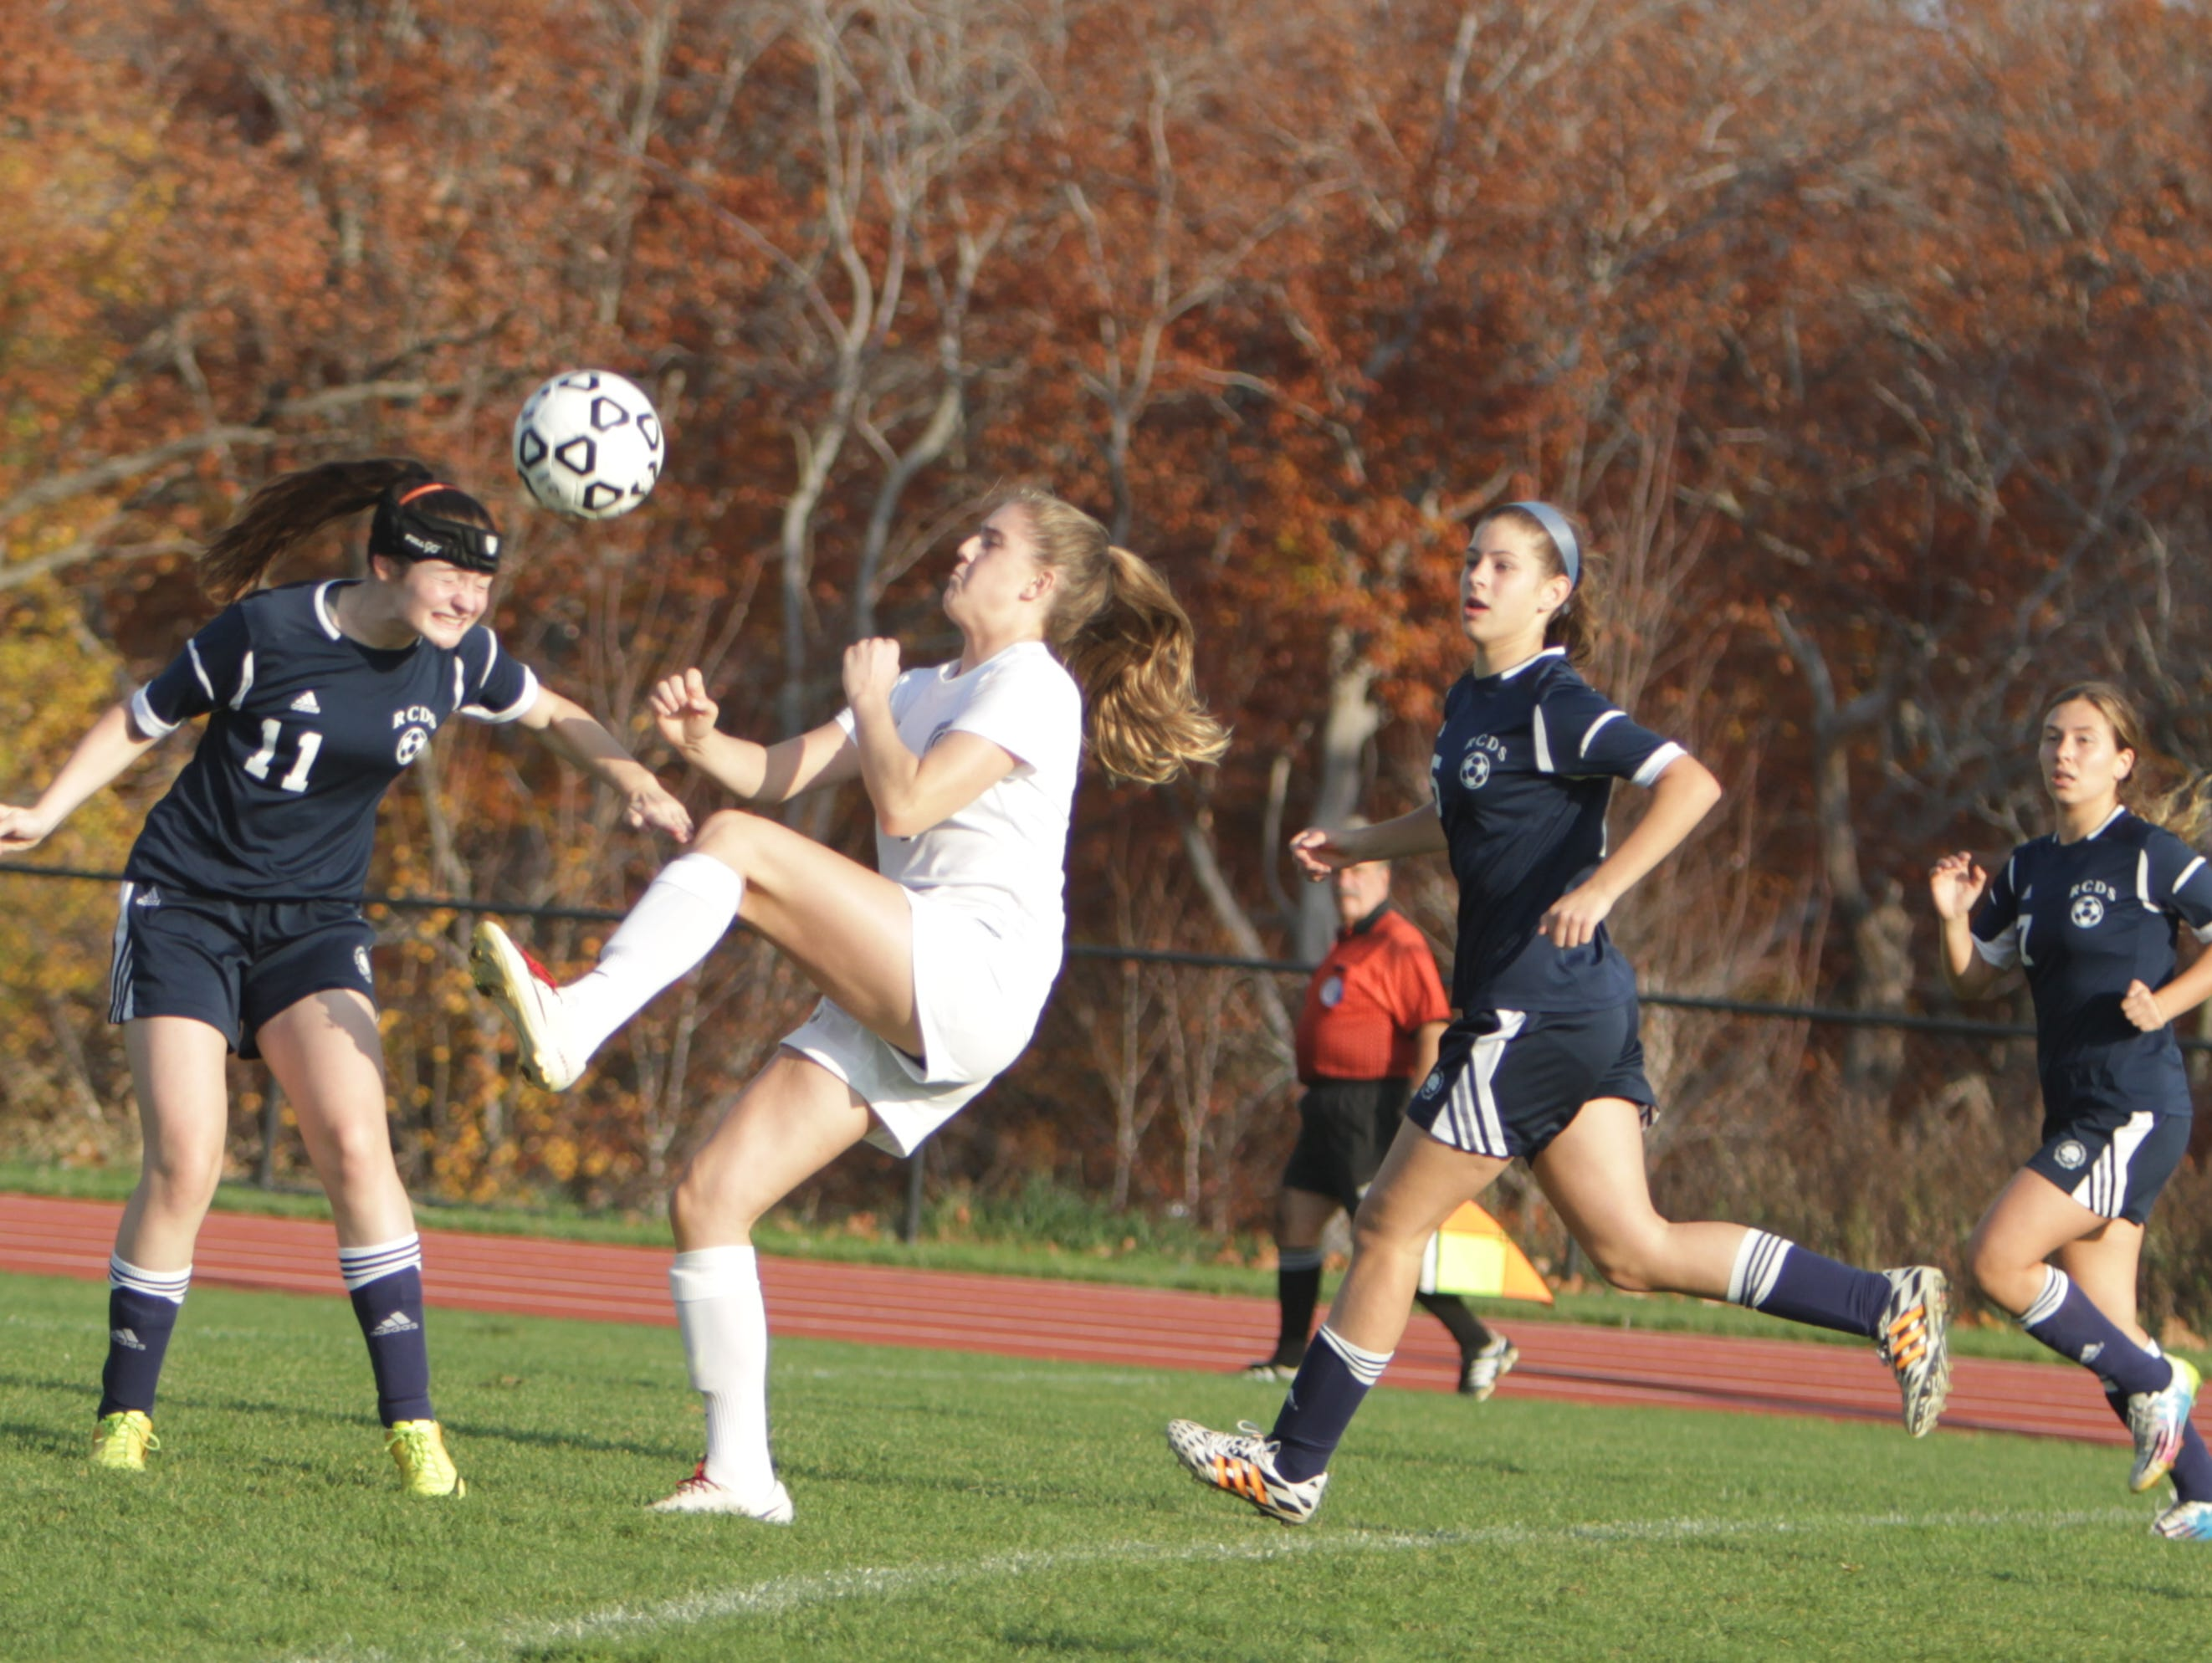 Rye Country Day's Madeline Zuber heads the ball away from Hackley's Sammy Mueller during a NYSAIS semifinal match at the Hackley School on Friday, November 6th, 2015. Hackley won 3-1.